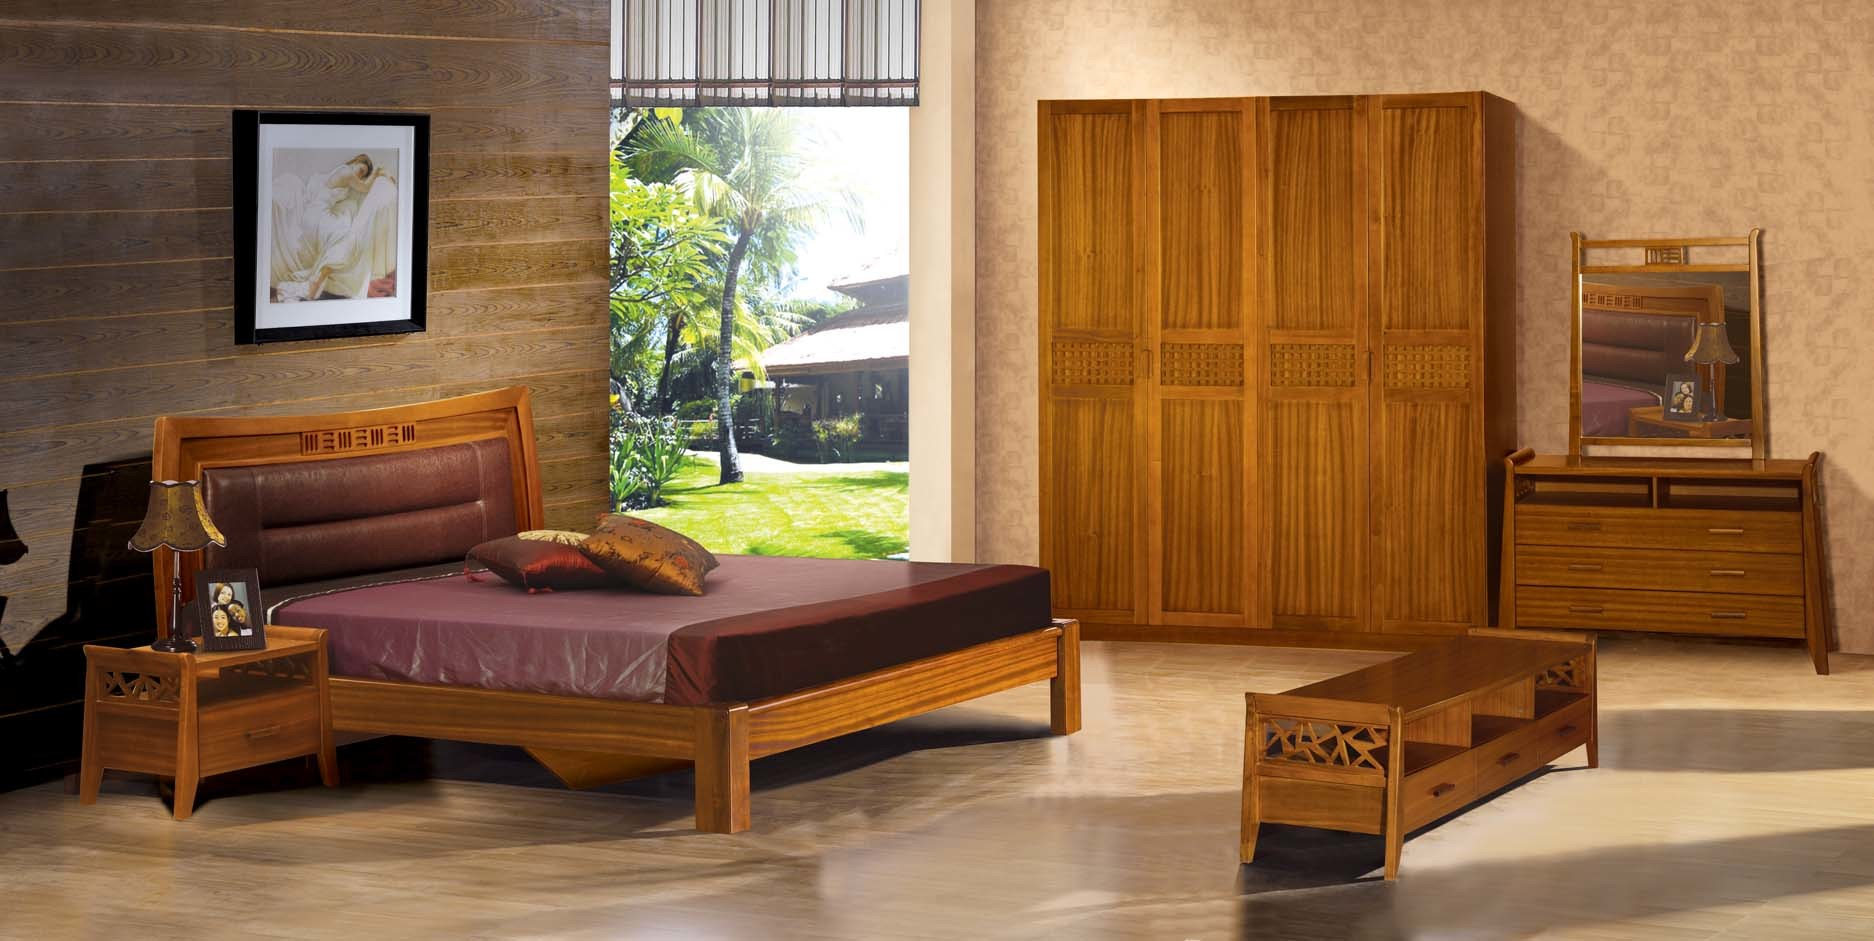 Teak wood bedroom set china bedroom set bedroom furniture - maries ...